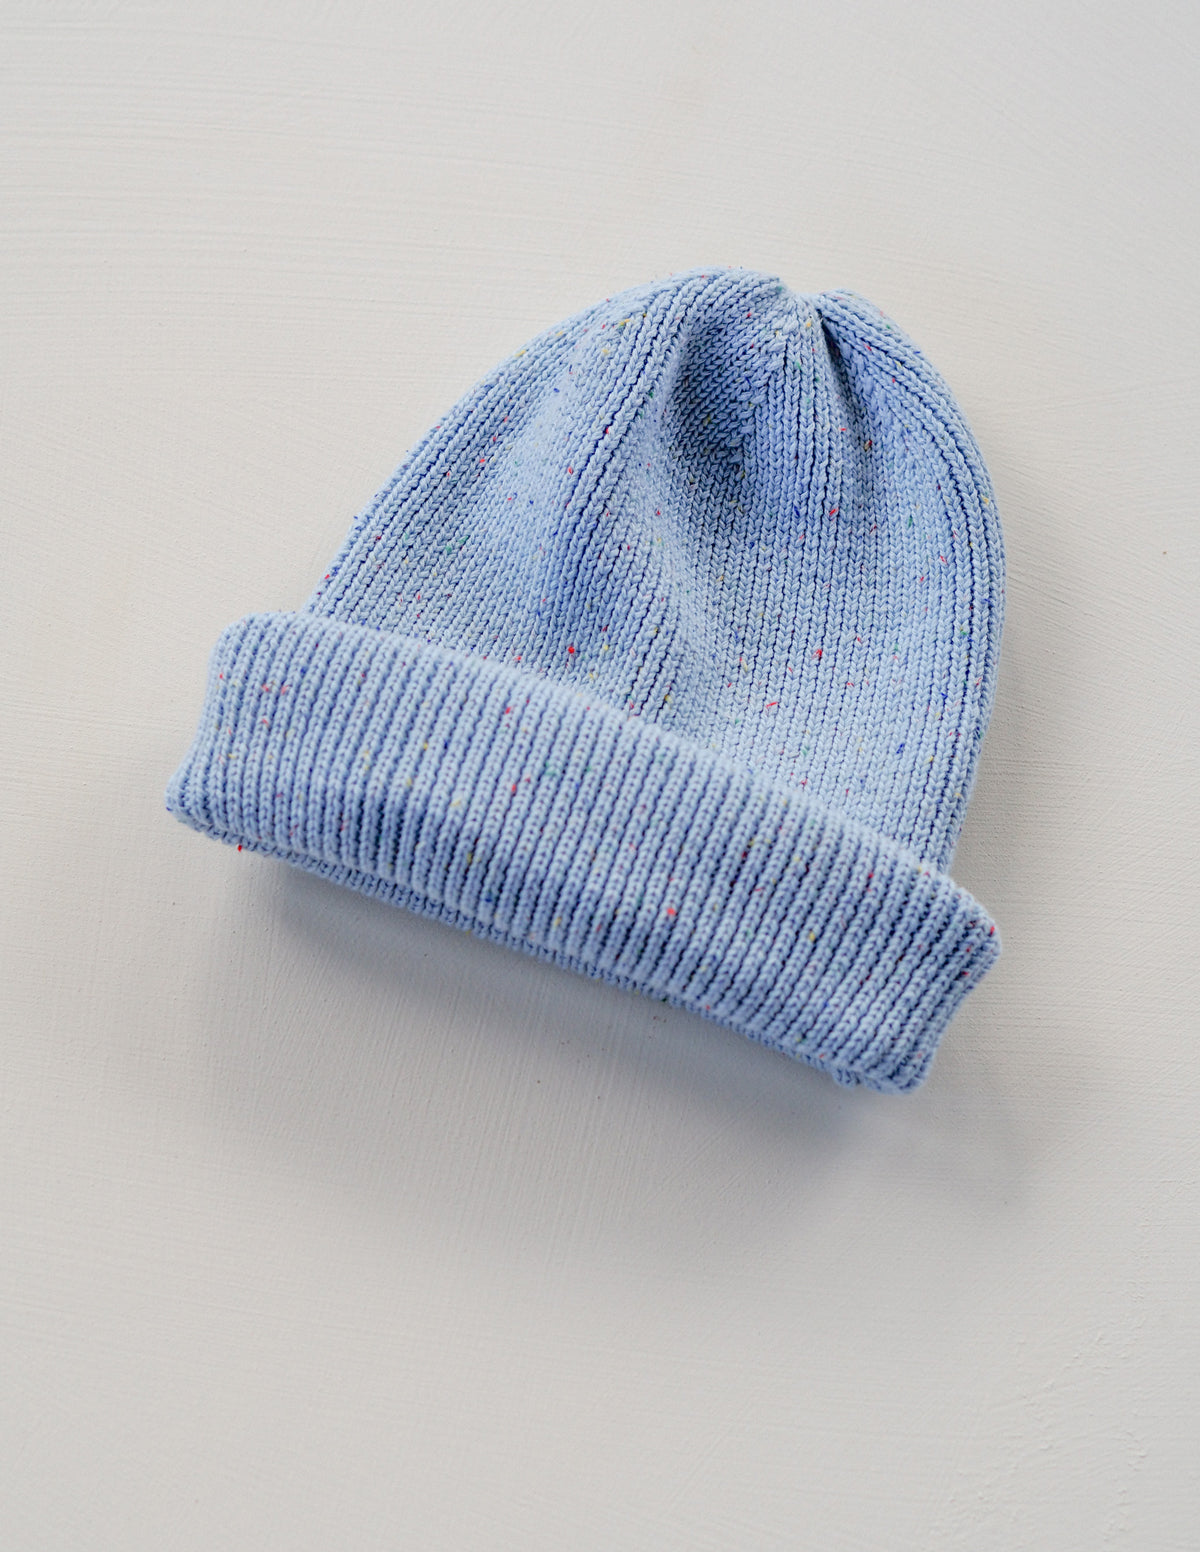 The sky blue sprinkle beanie